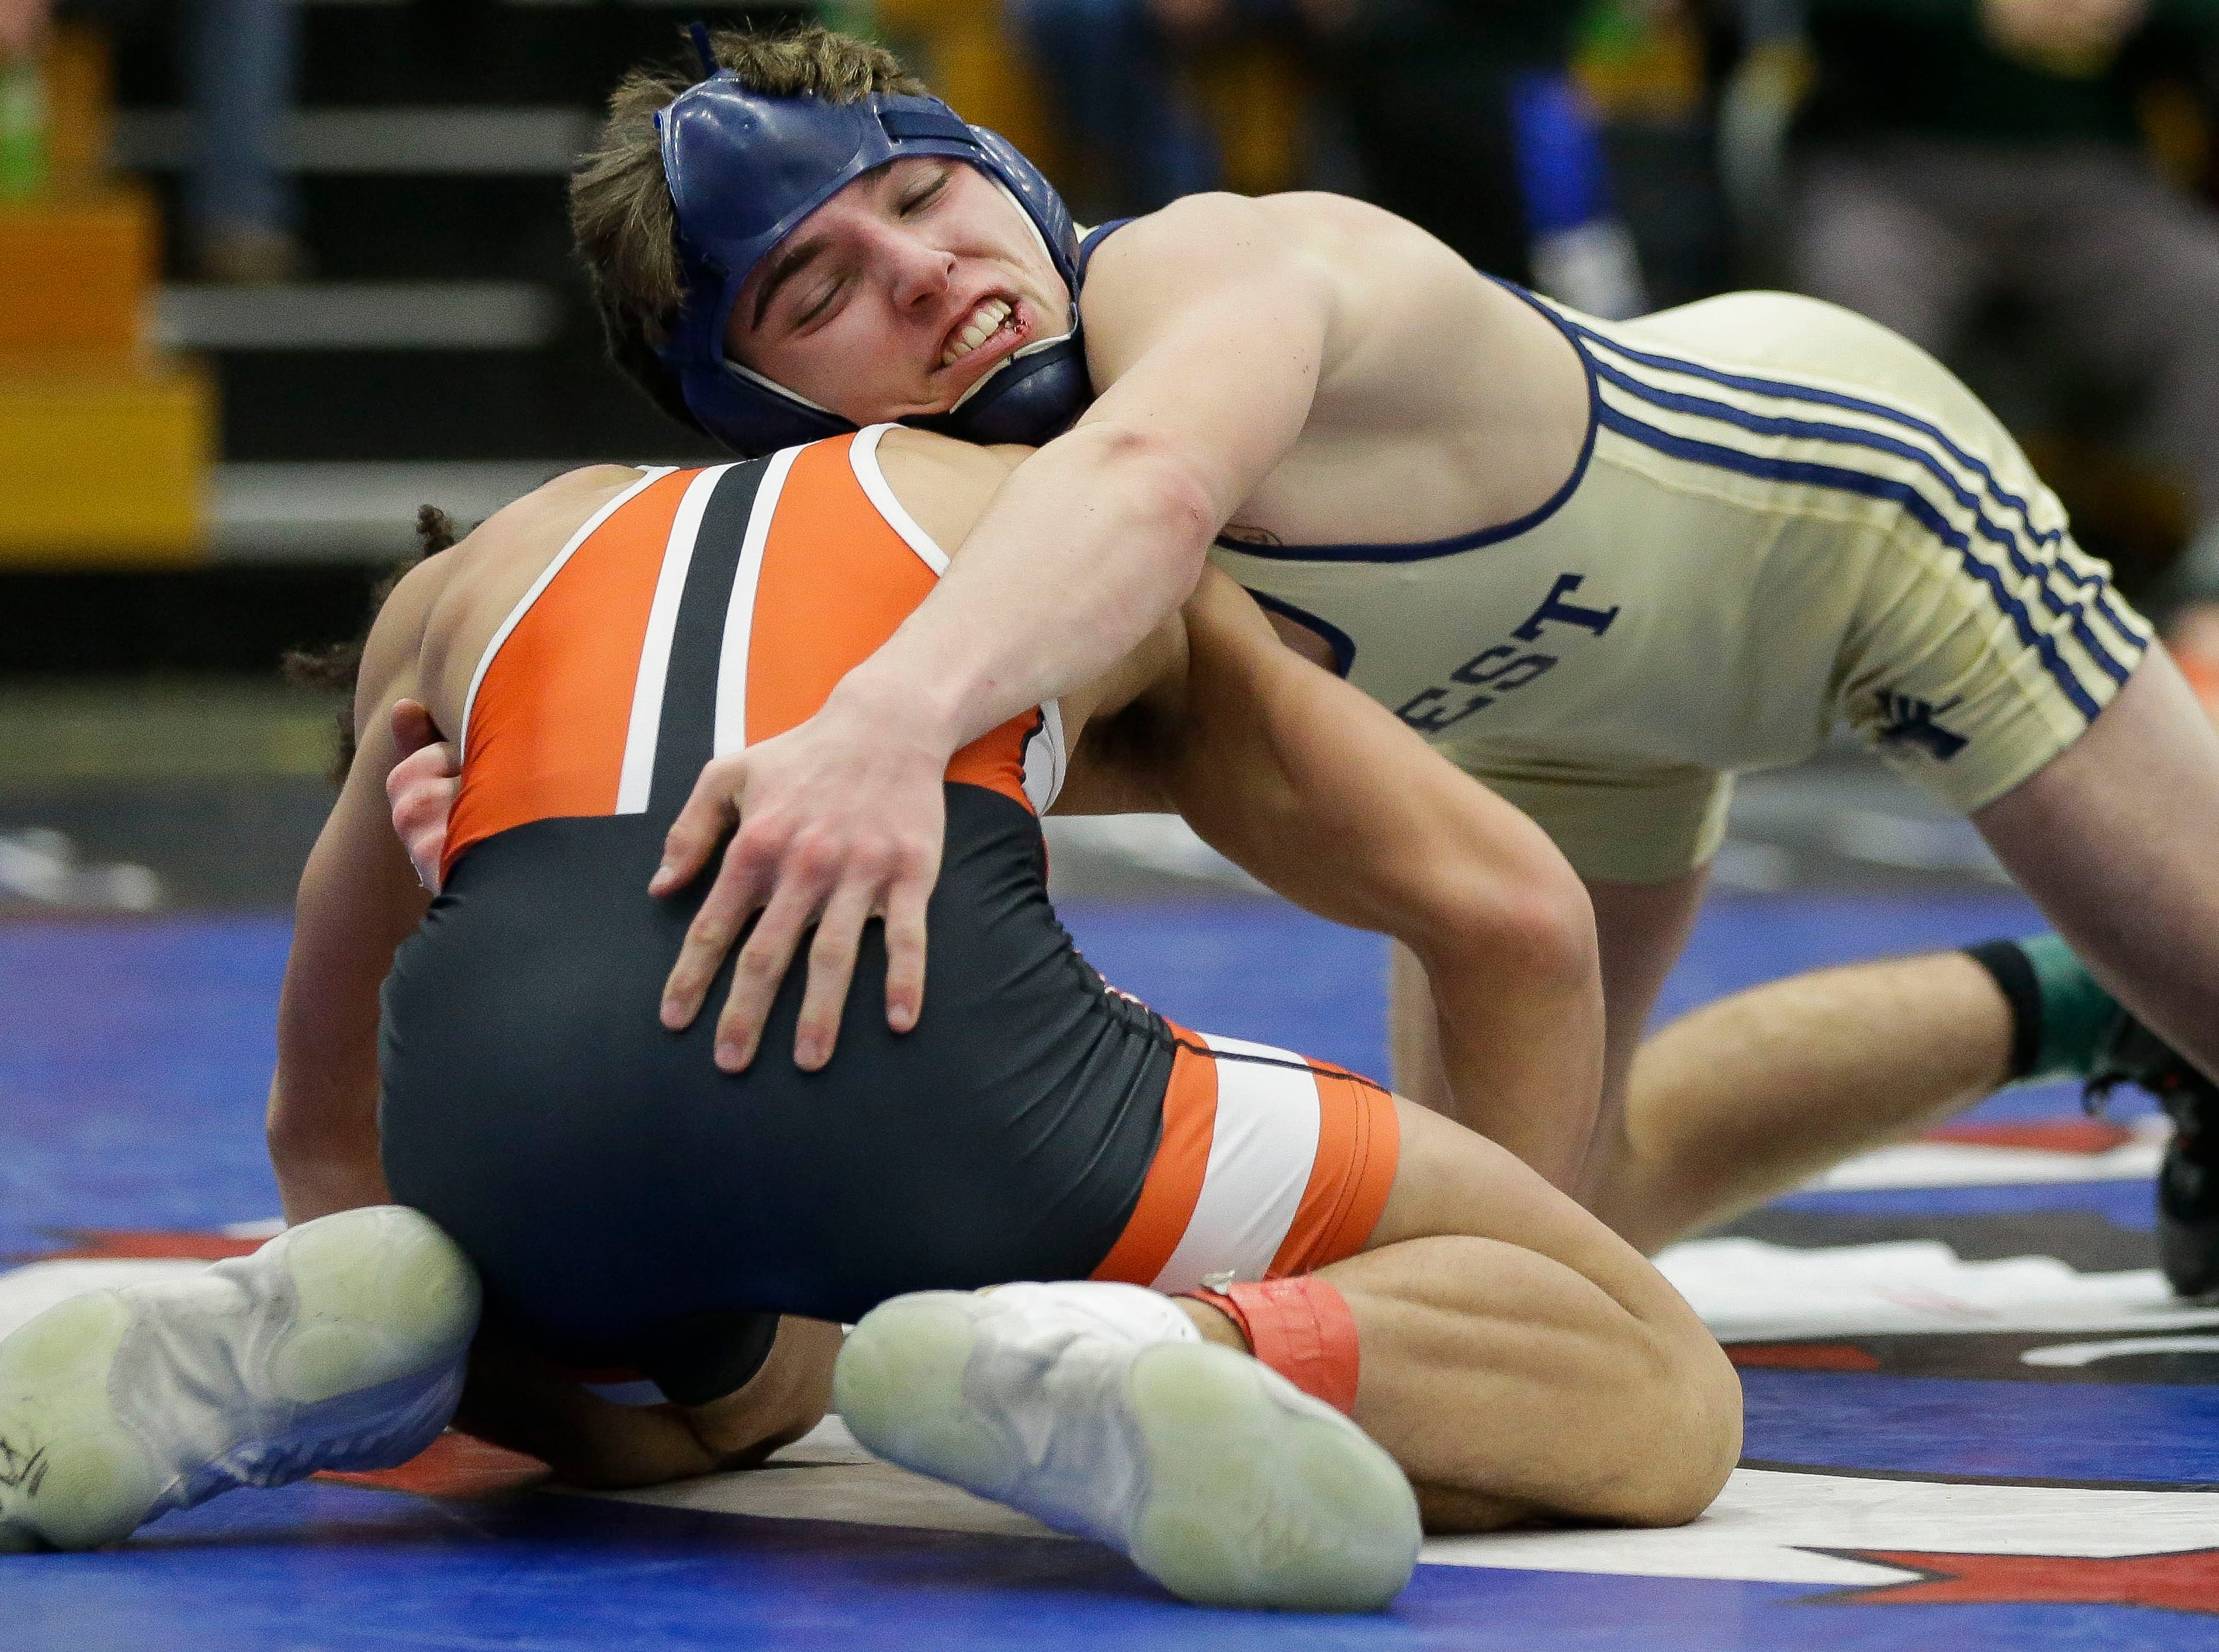 Wausau West's Cameron Schmeiser wrestles against Marshfield's Gabe Pugh in the 126-pound championship match on Saturday, February 9, 2019, during a regional tournament at Merrill High School in Merrill, Wis.